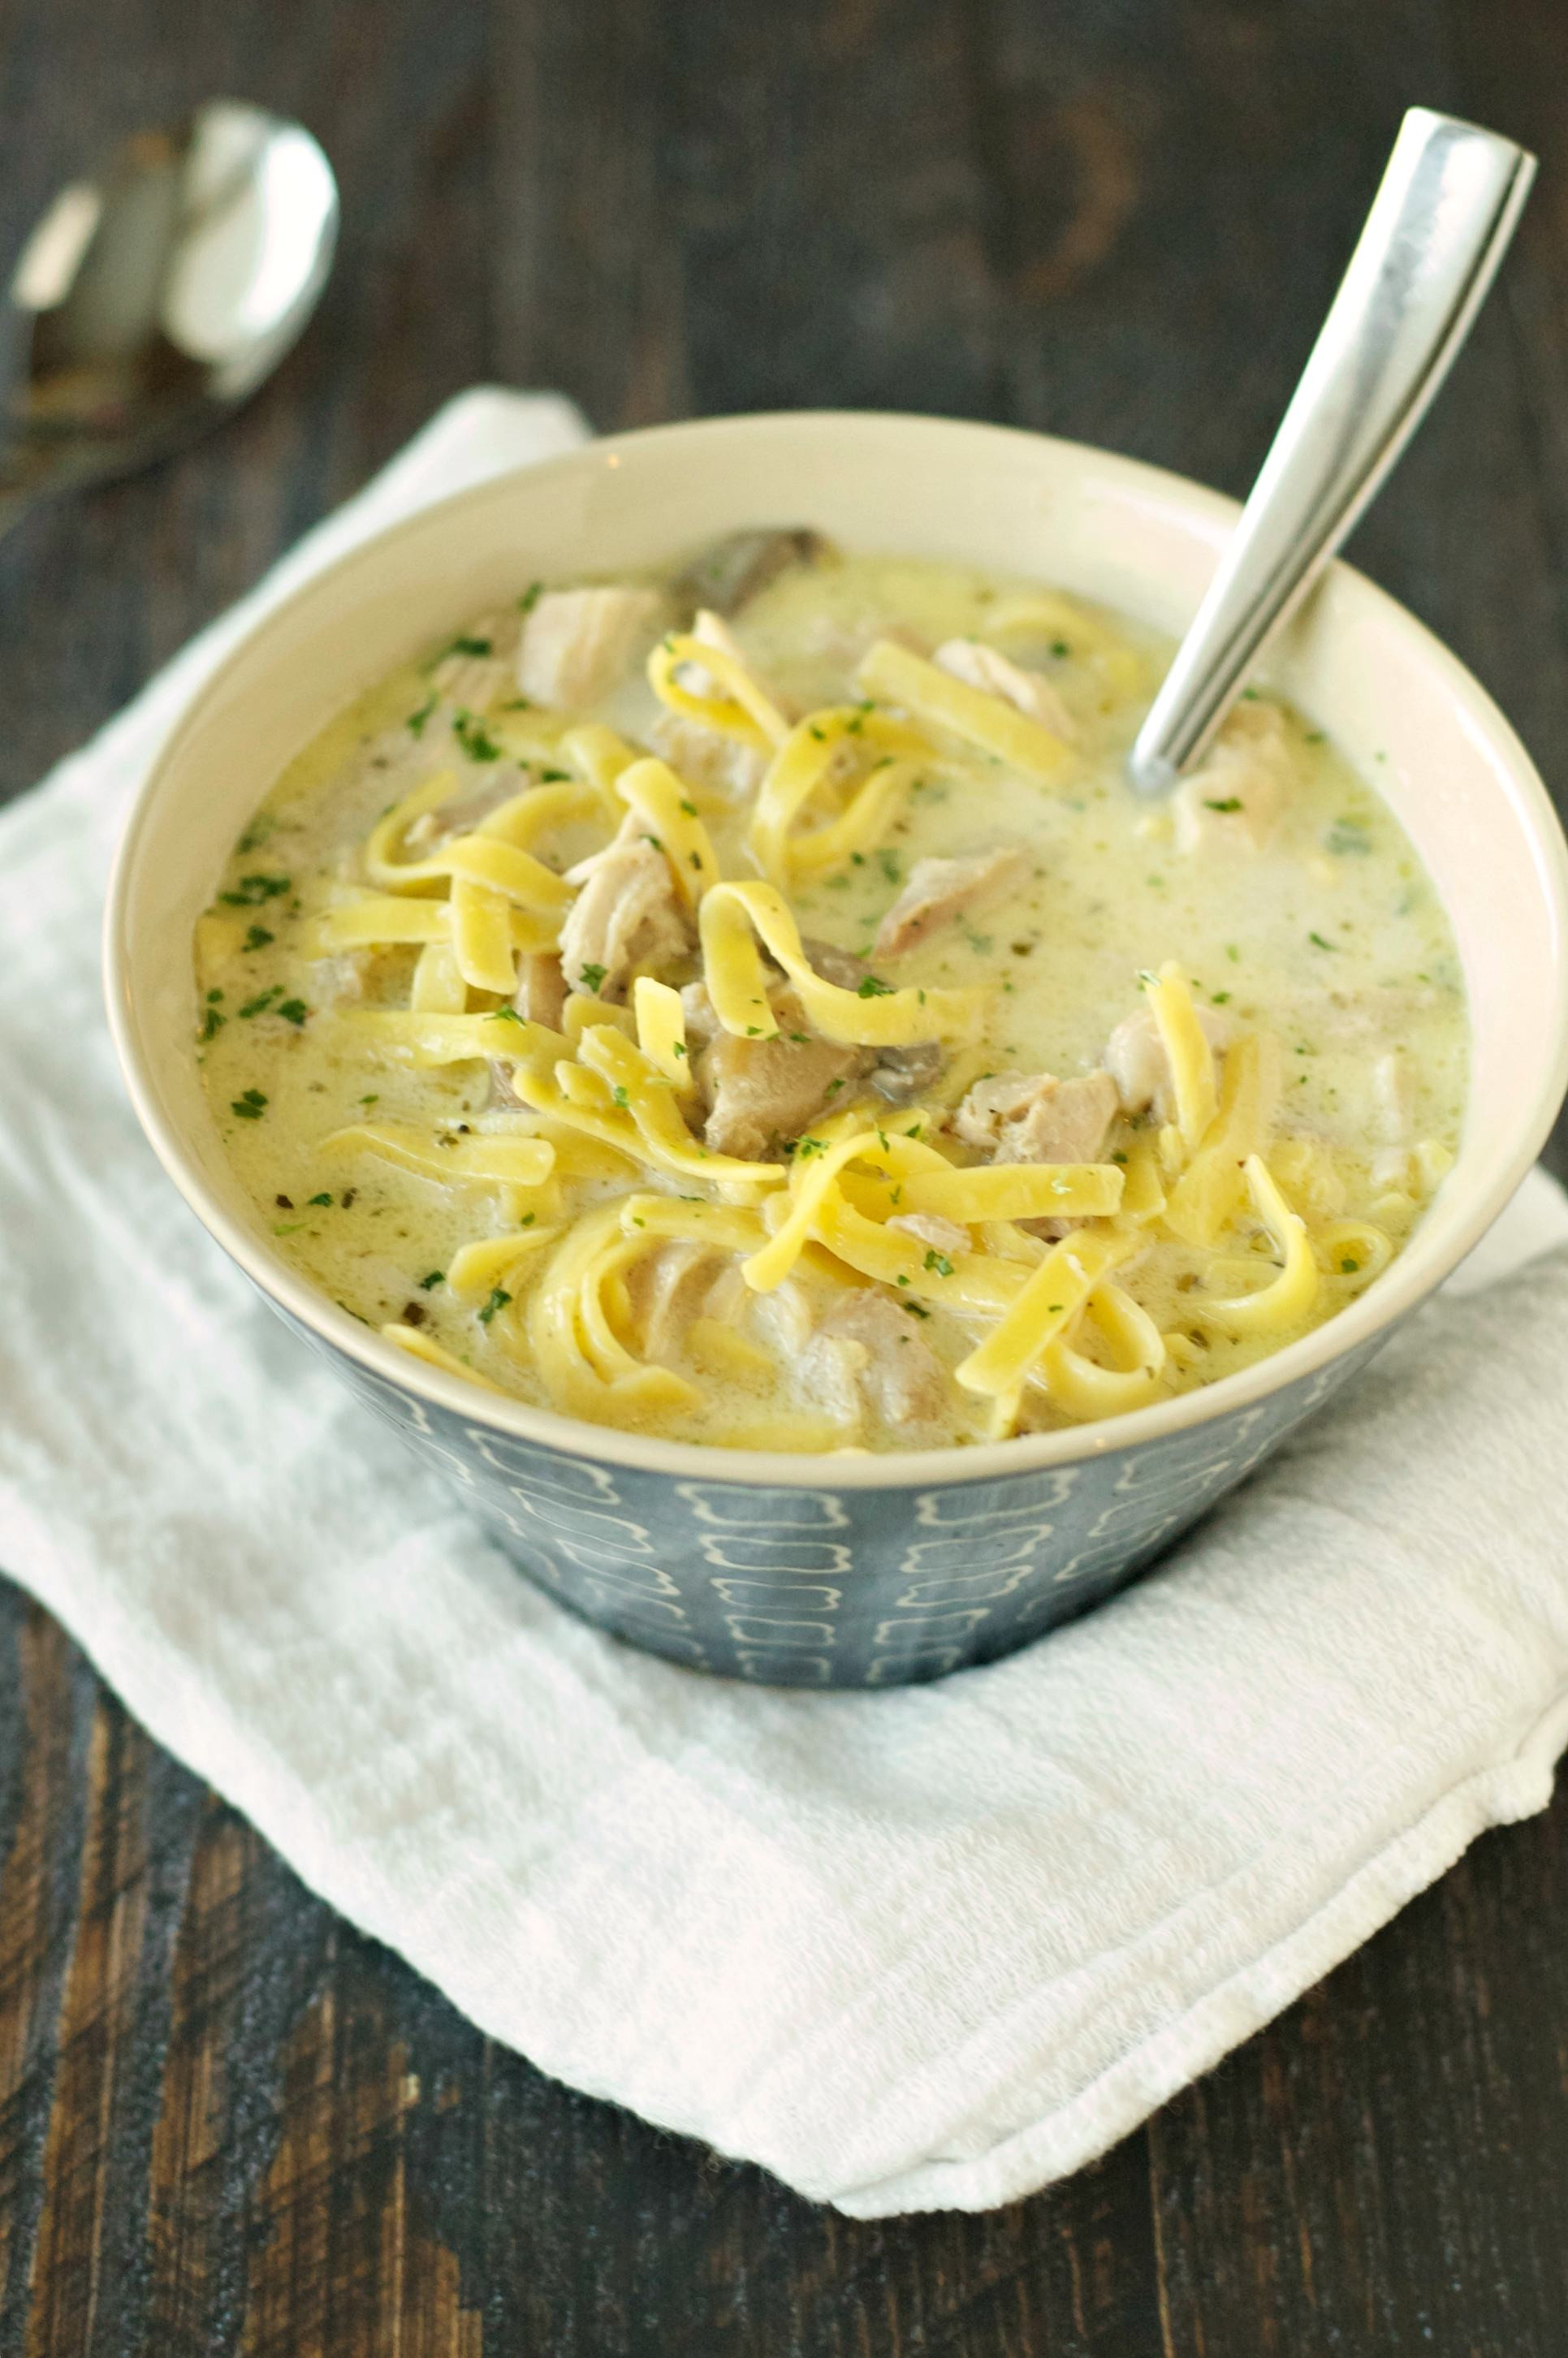 Creamy Chicken And Noodles  Slow Cooker Creamy Chicken Noodle Soup Slow Cooker Gourmet